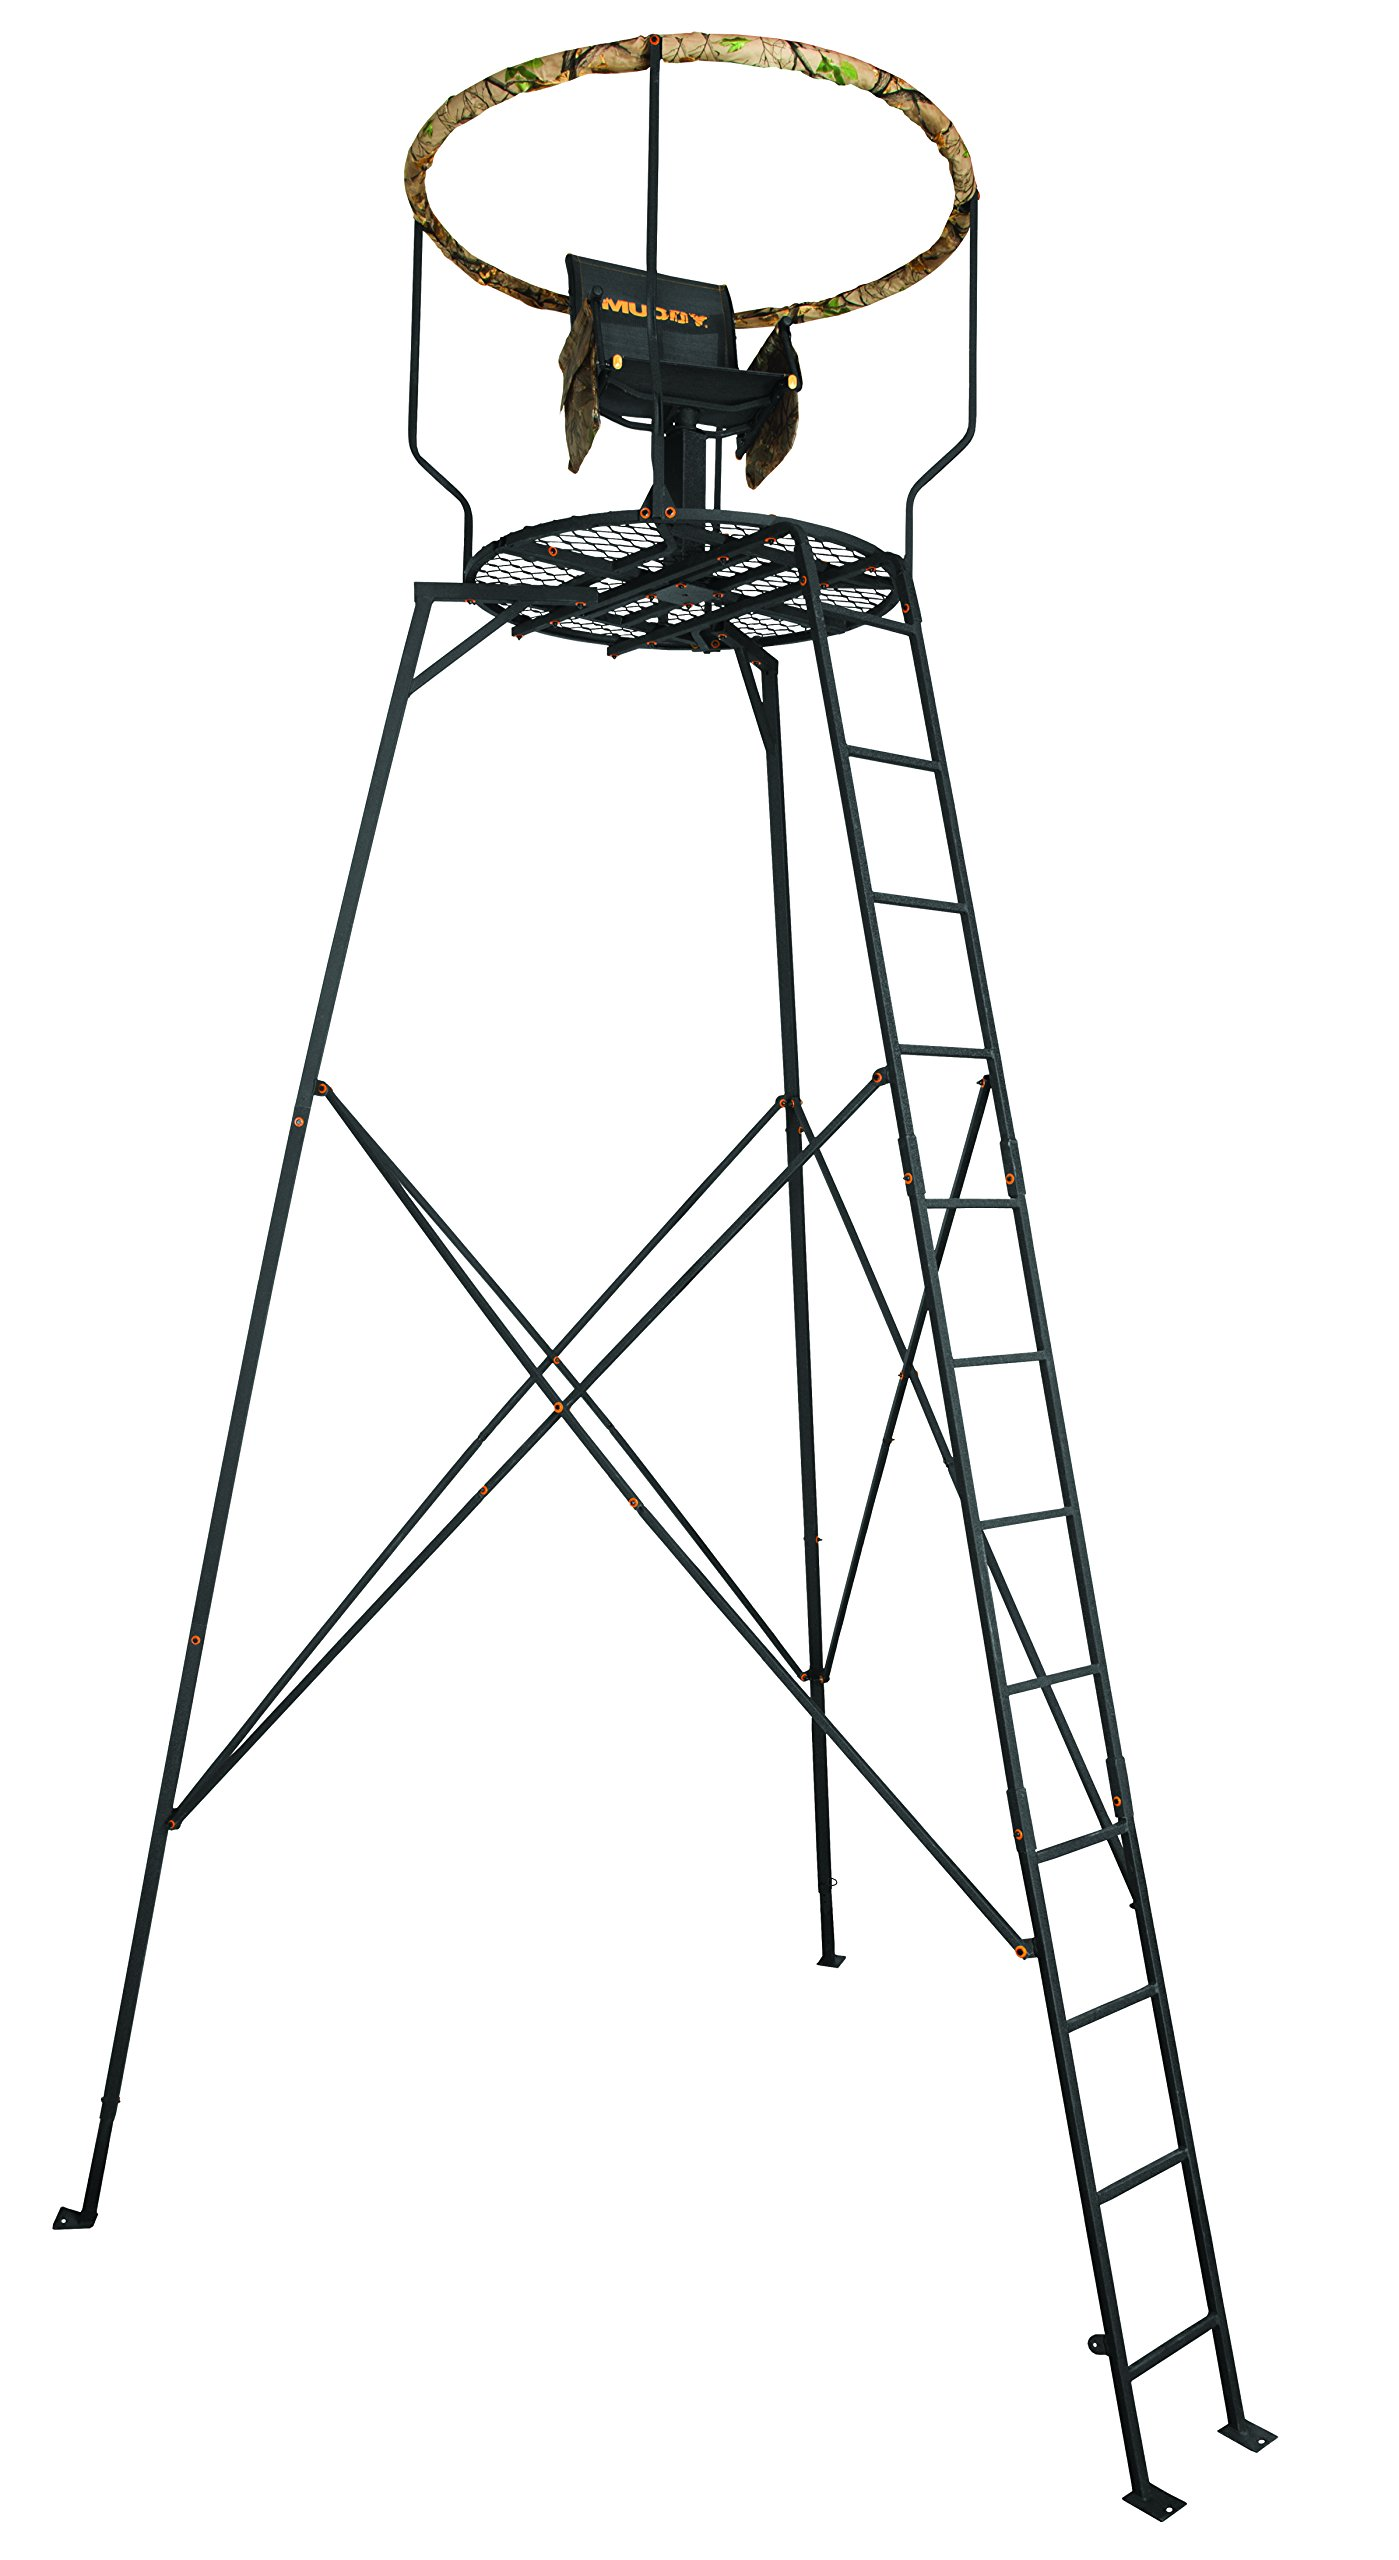 The Liberty Tripod 16 Foot, Wide and Comfortable